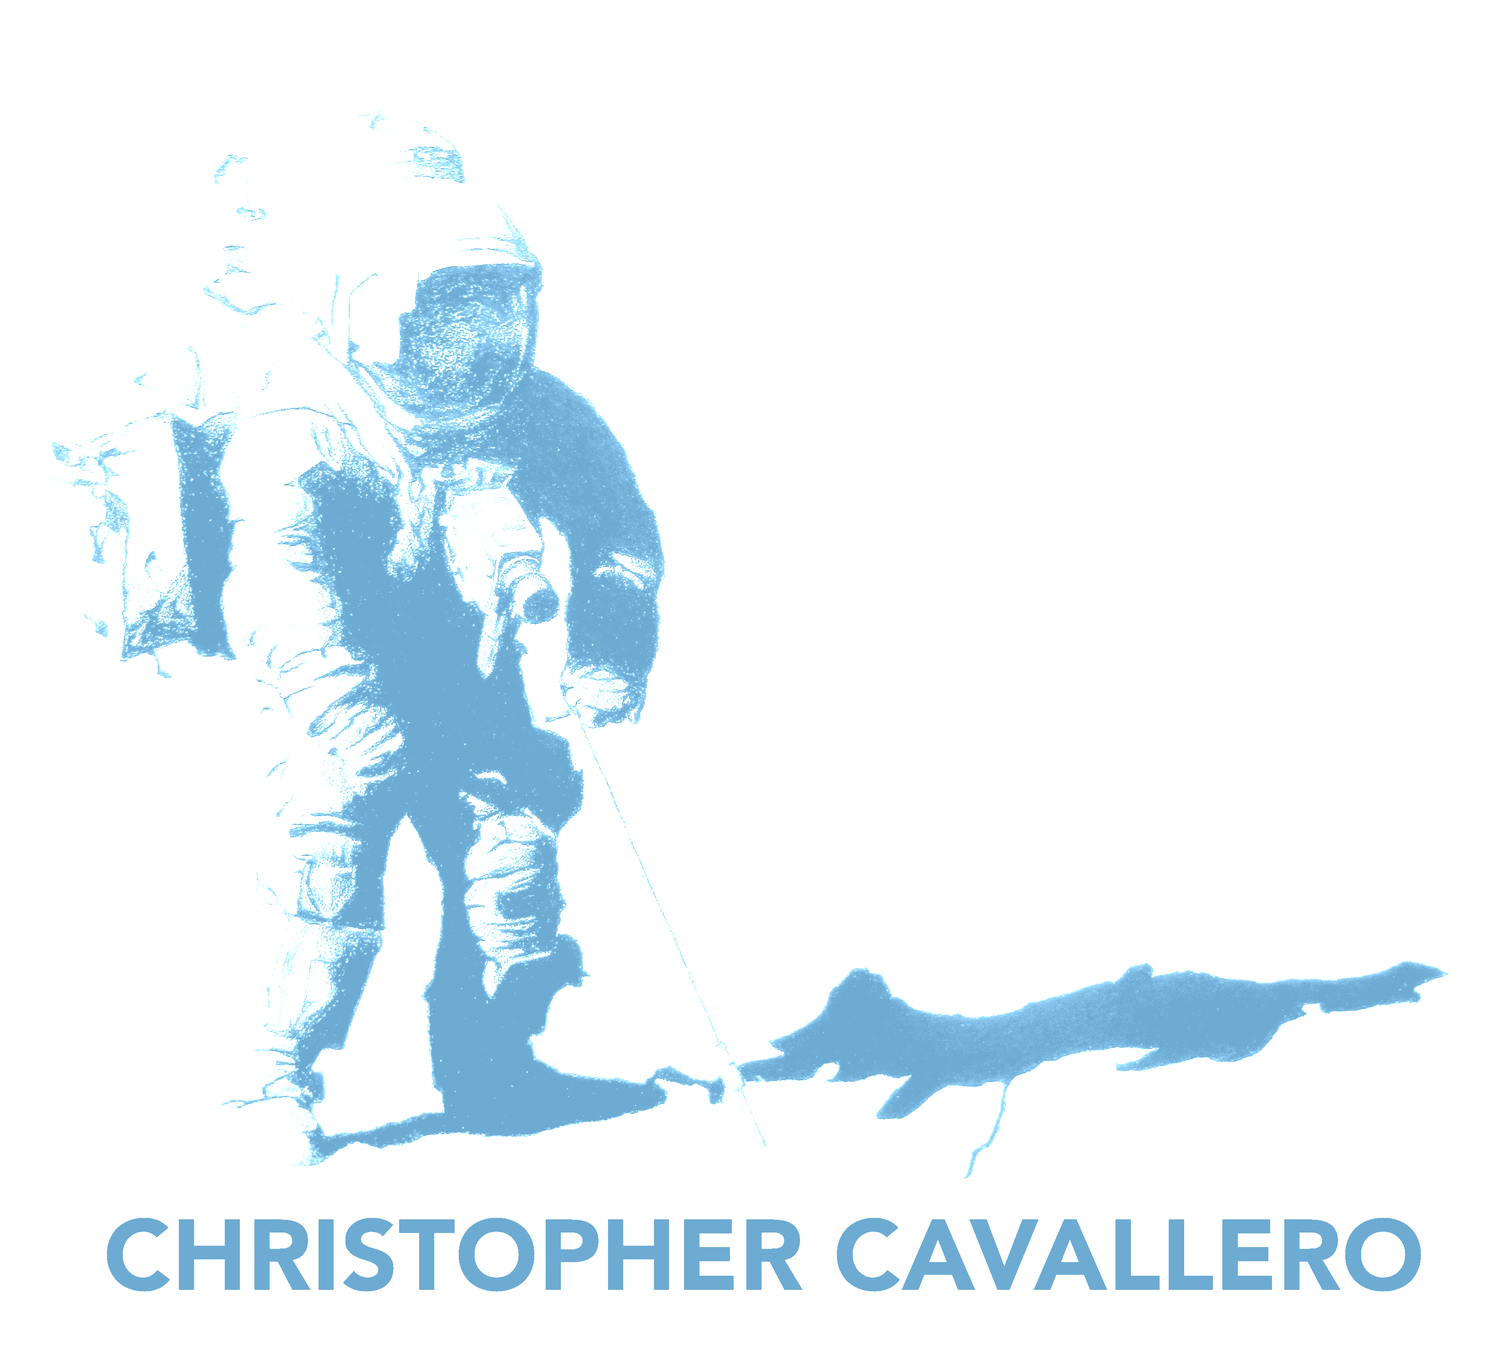 CHRISTOPHER CAVALLERO